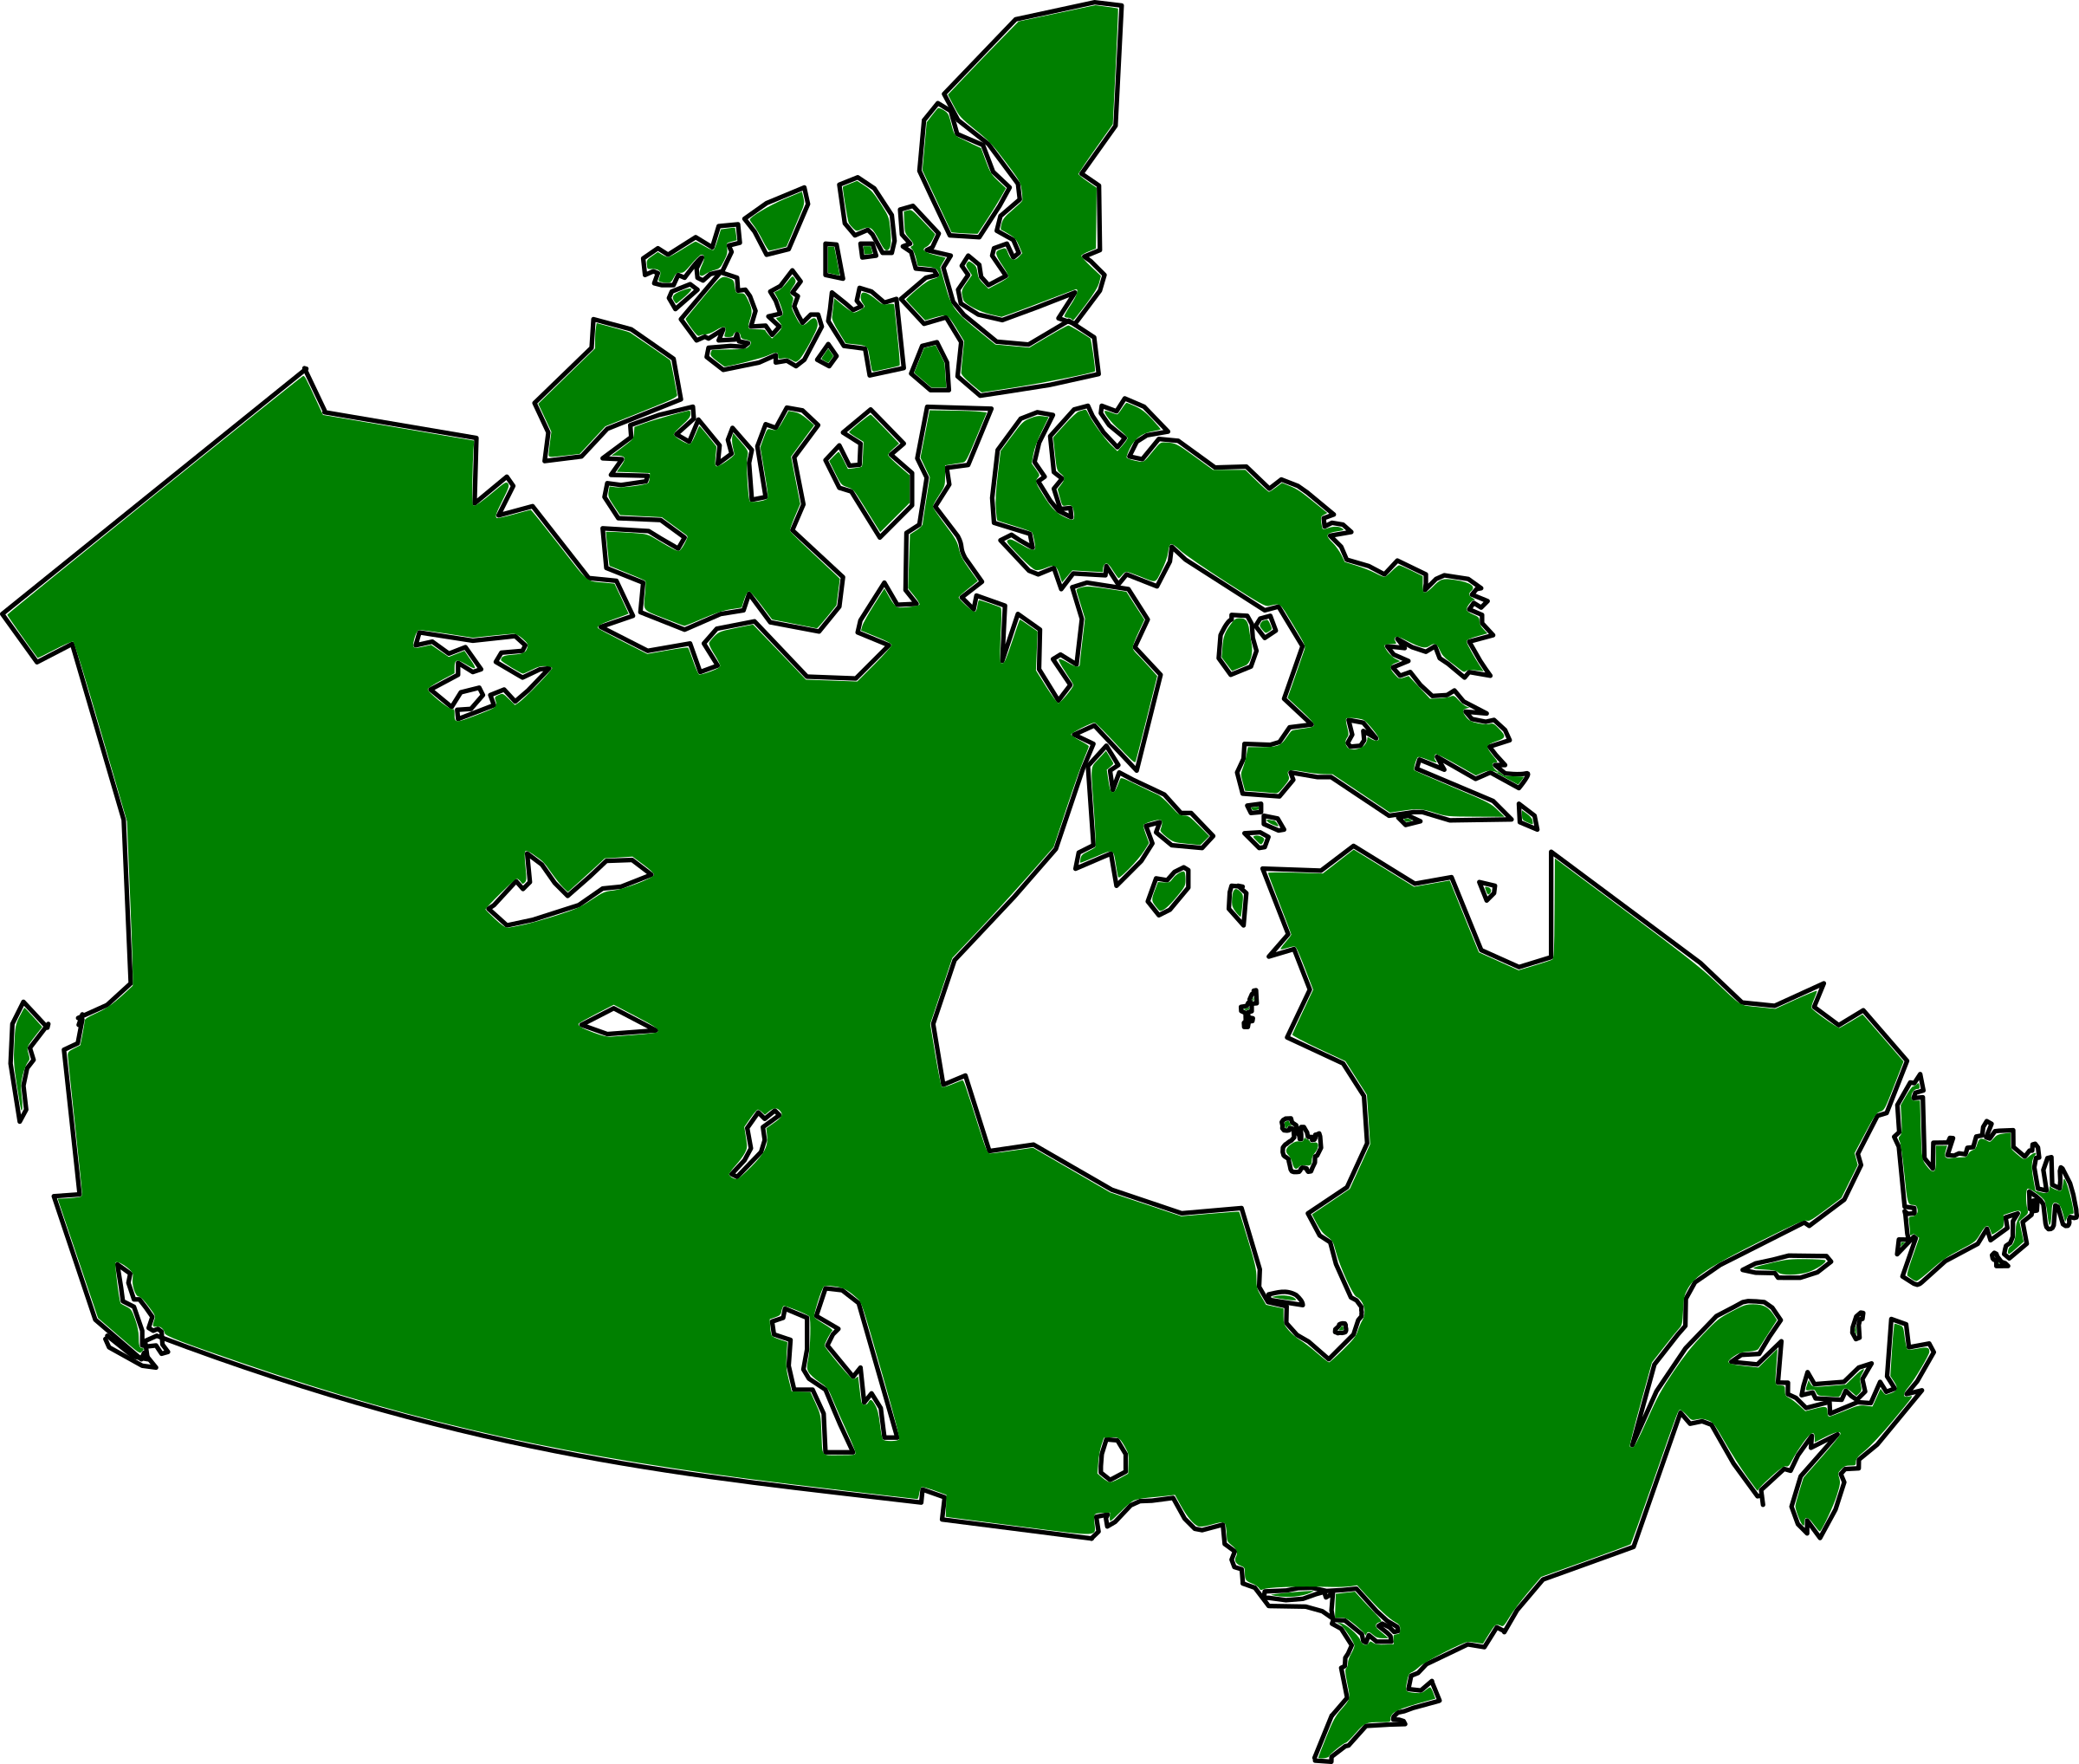 Big Image Map Of Canada Clipart.